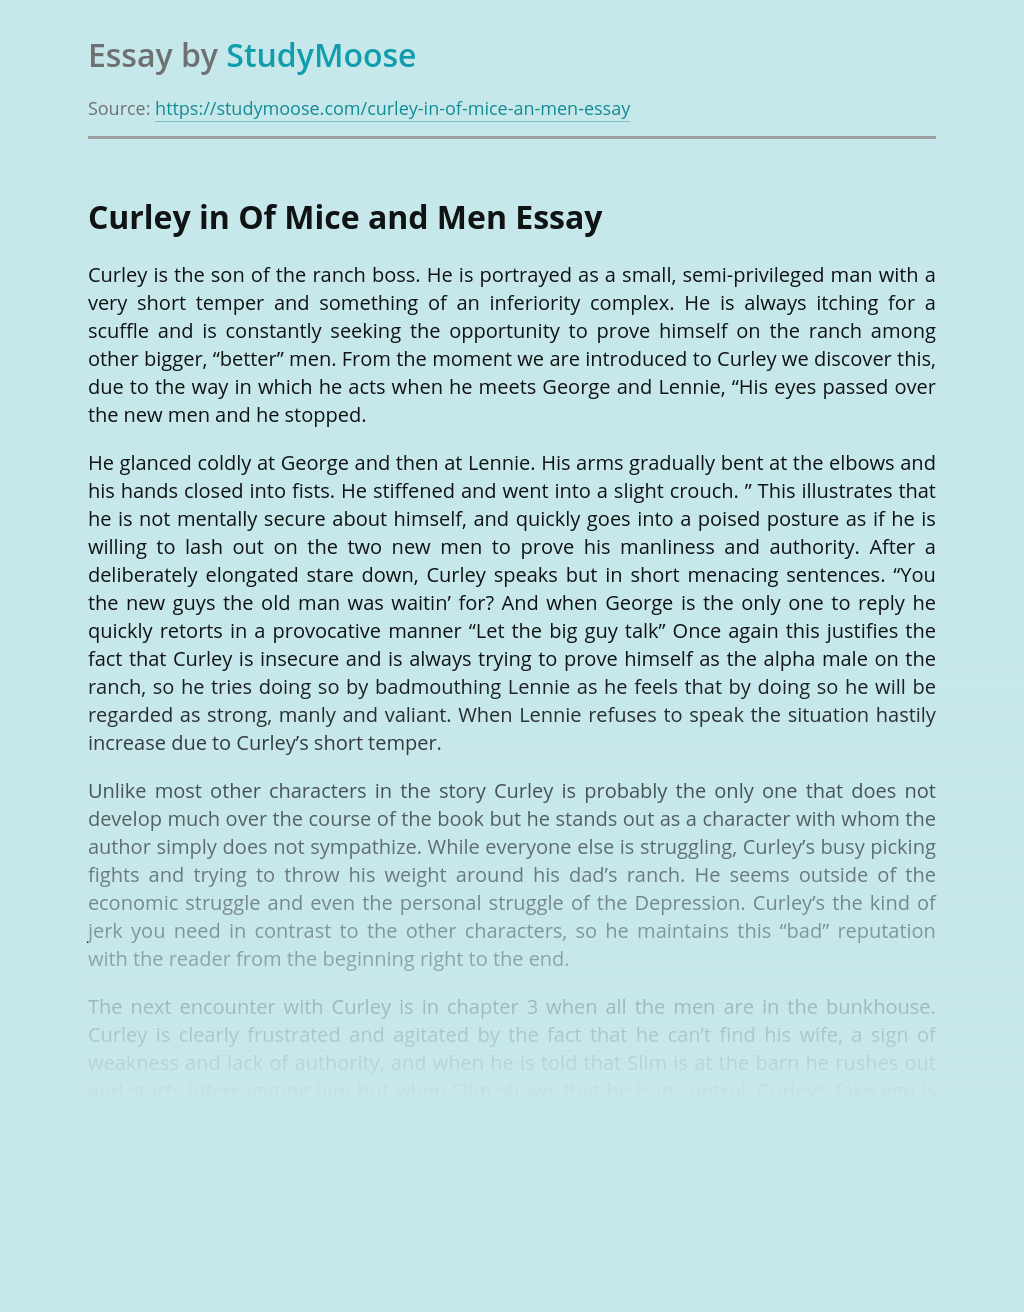 Curley in Of Mice and Men